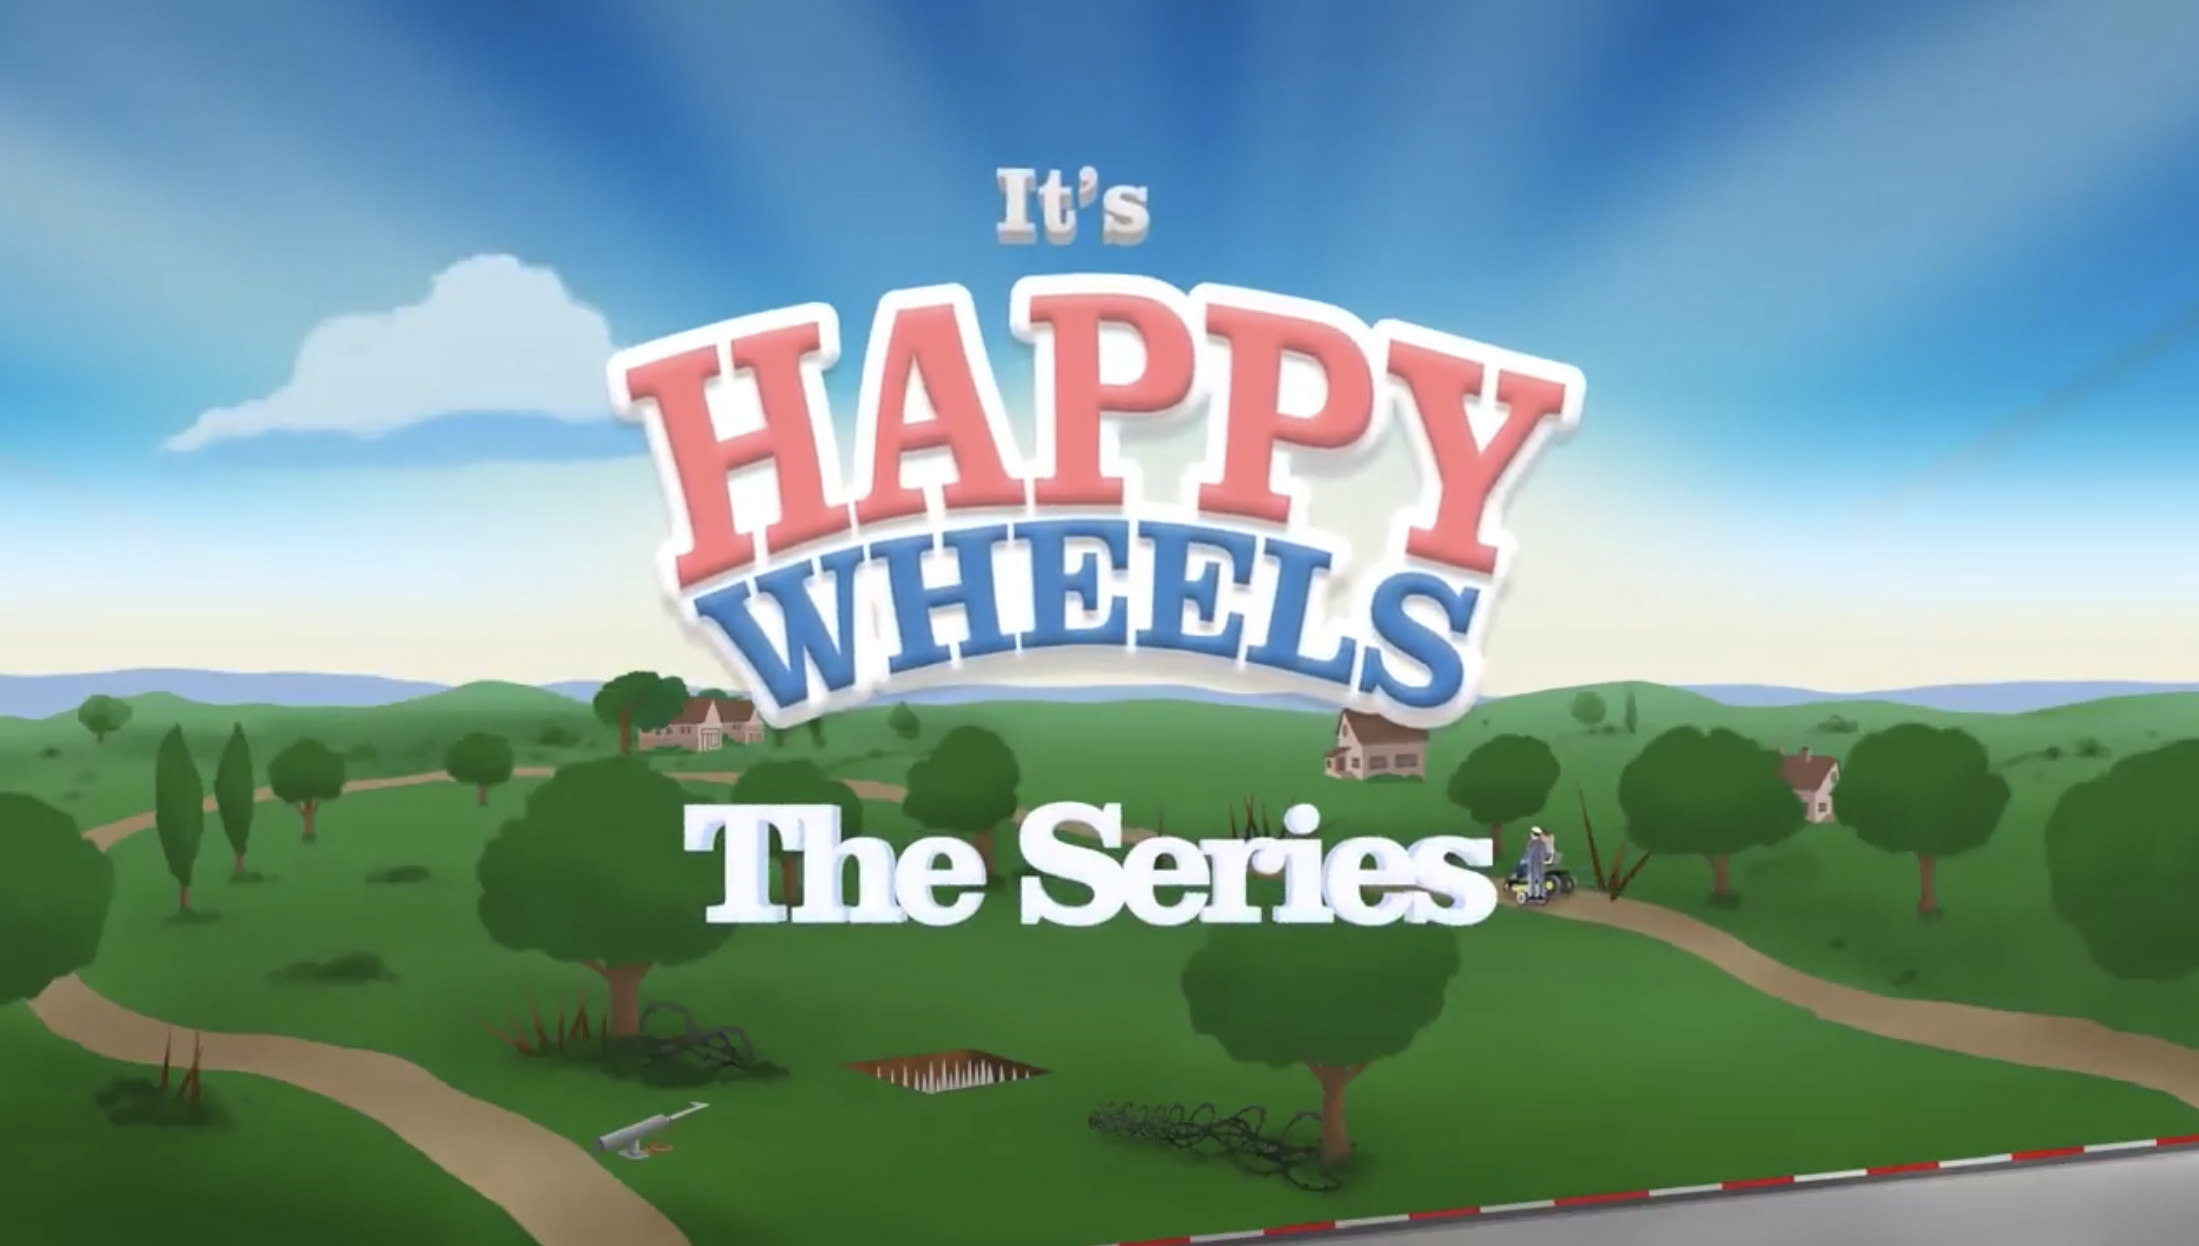 Happy Wheels the Series - Happy Wheels: The Series (partially lost go90 animated series based on mobile game; 2016)